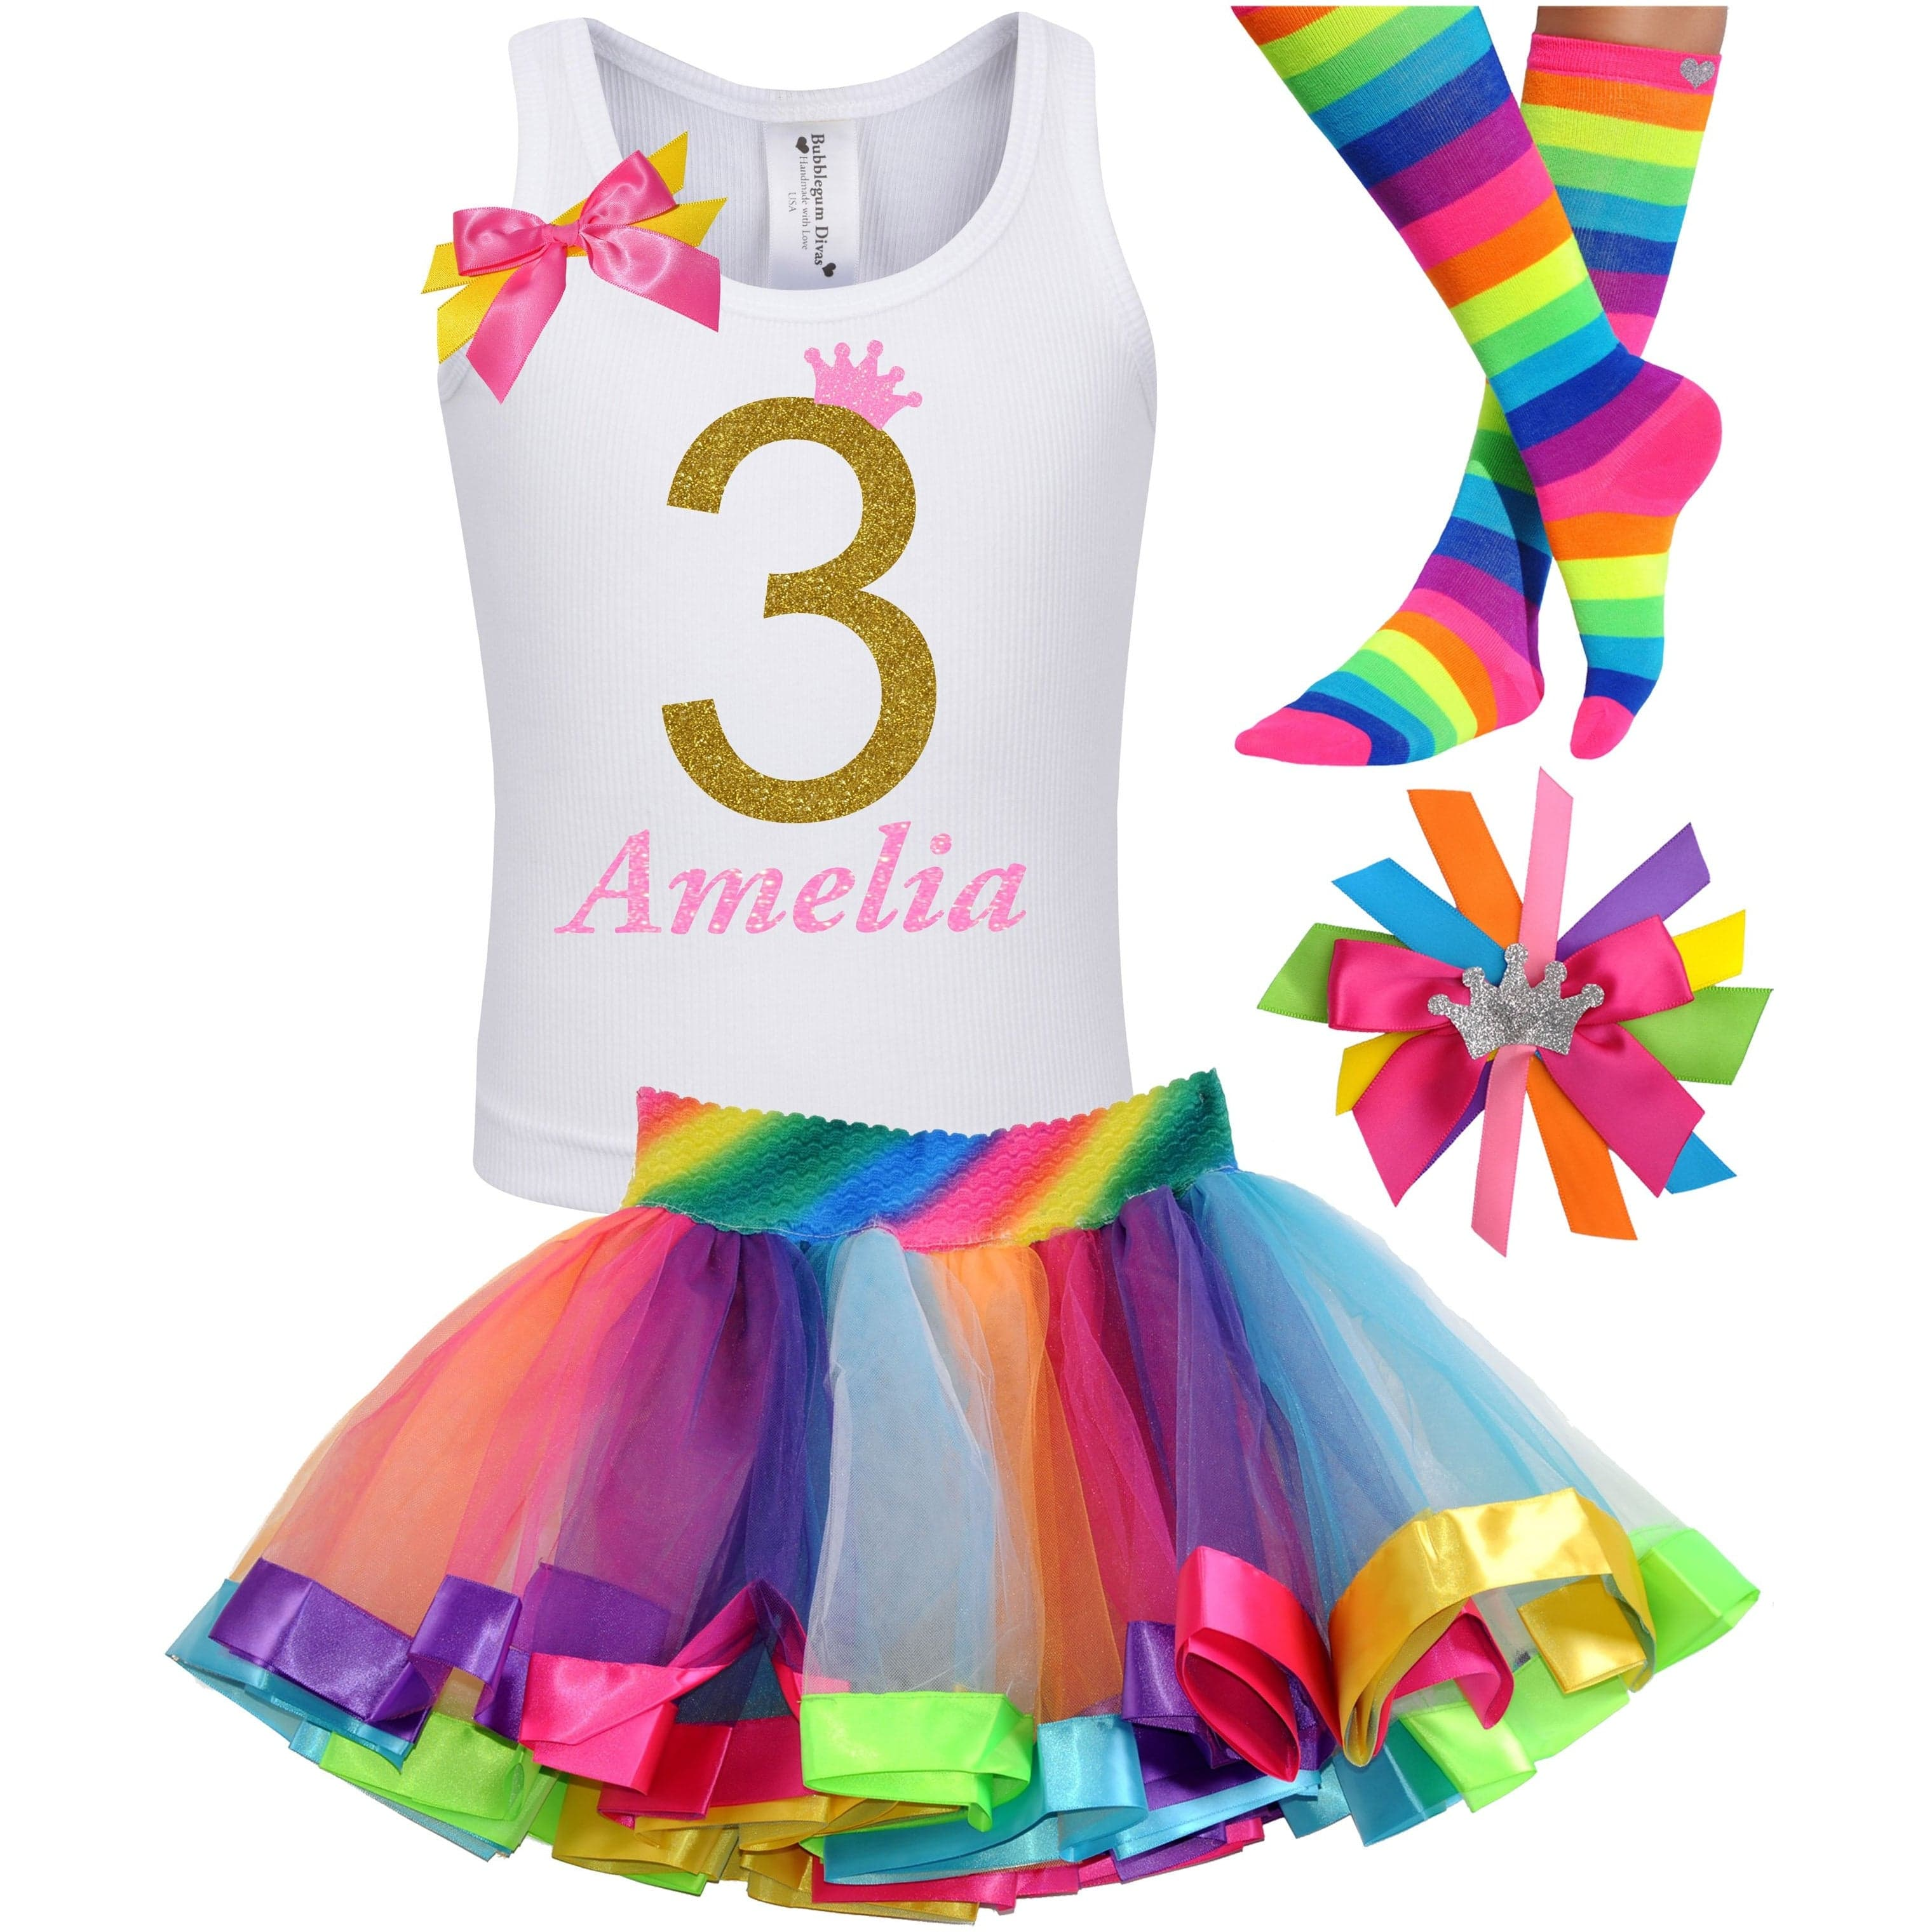 3rd Birthday Gold Glitter Shirt Girls Rainbow Tutu Party Outfit 4PC Set - Outfit - Bubblegum Divas Store